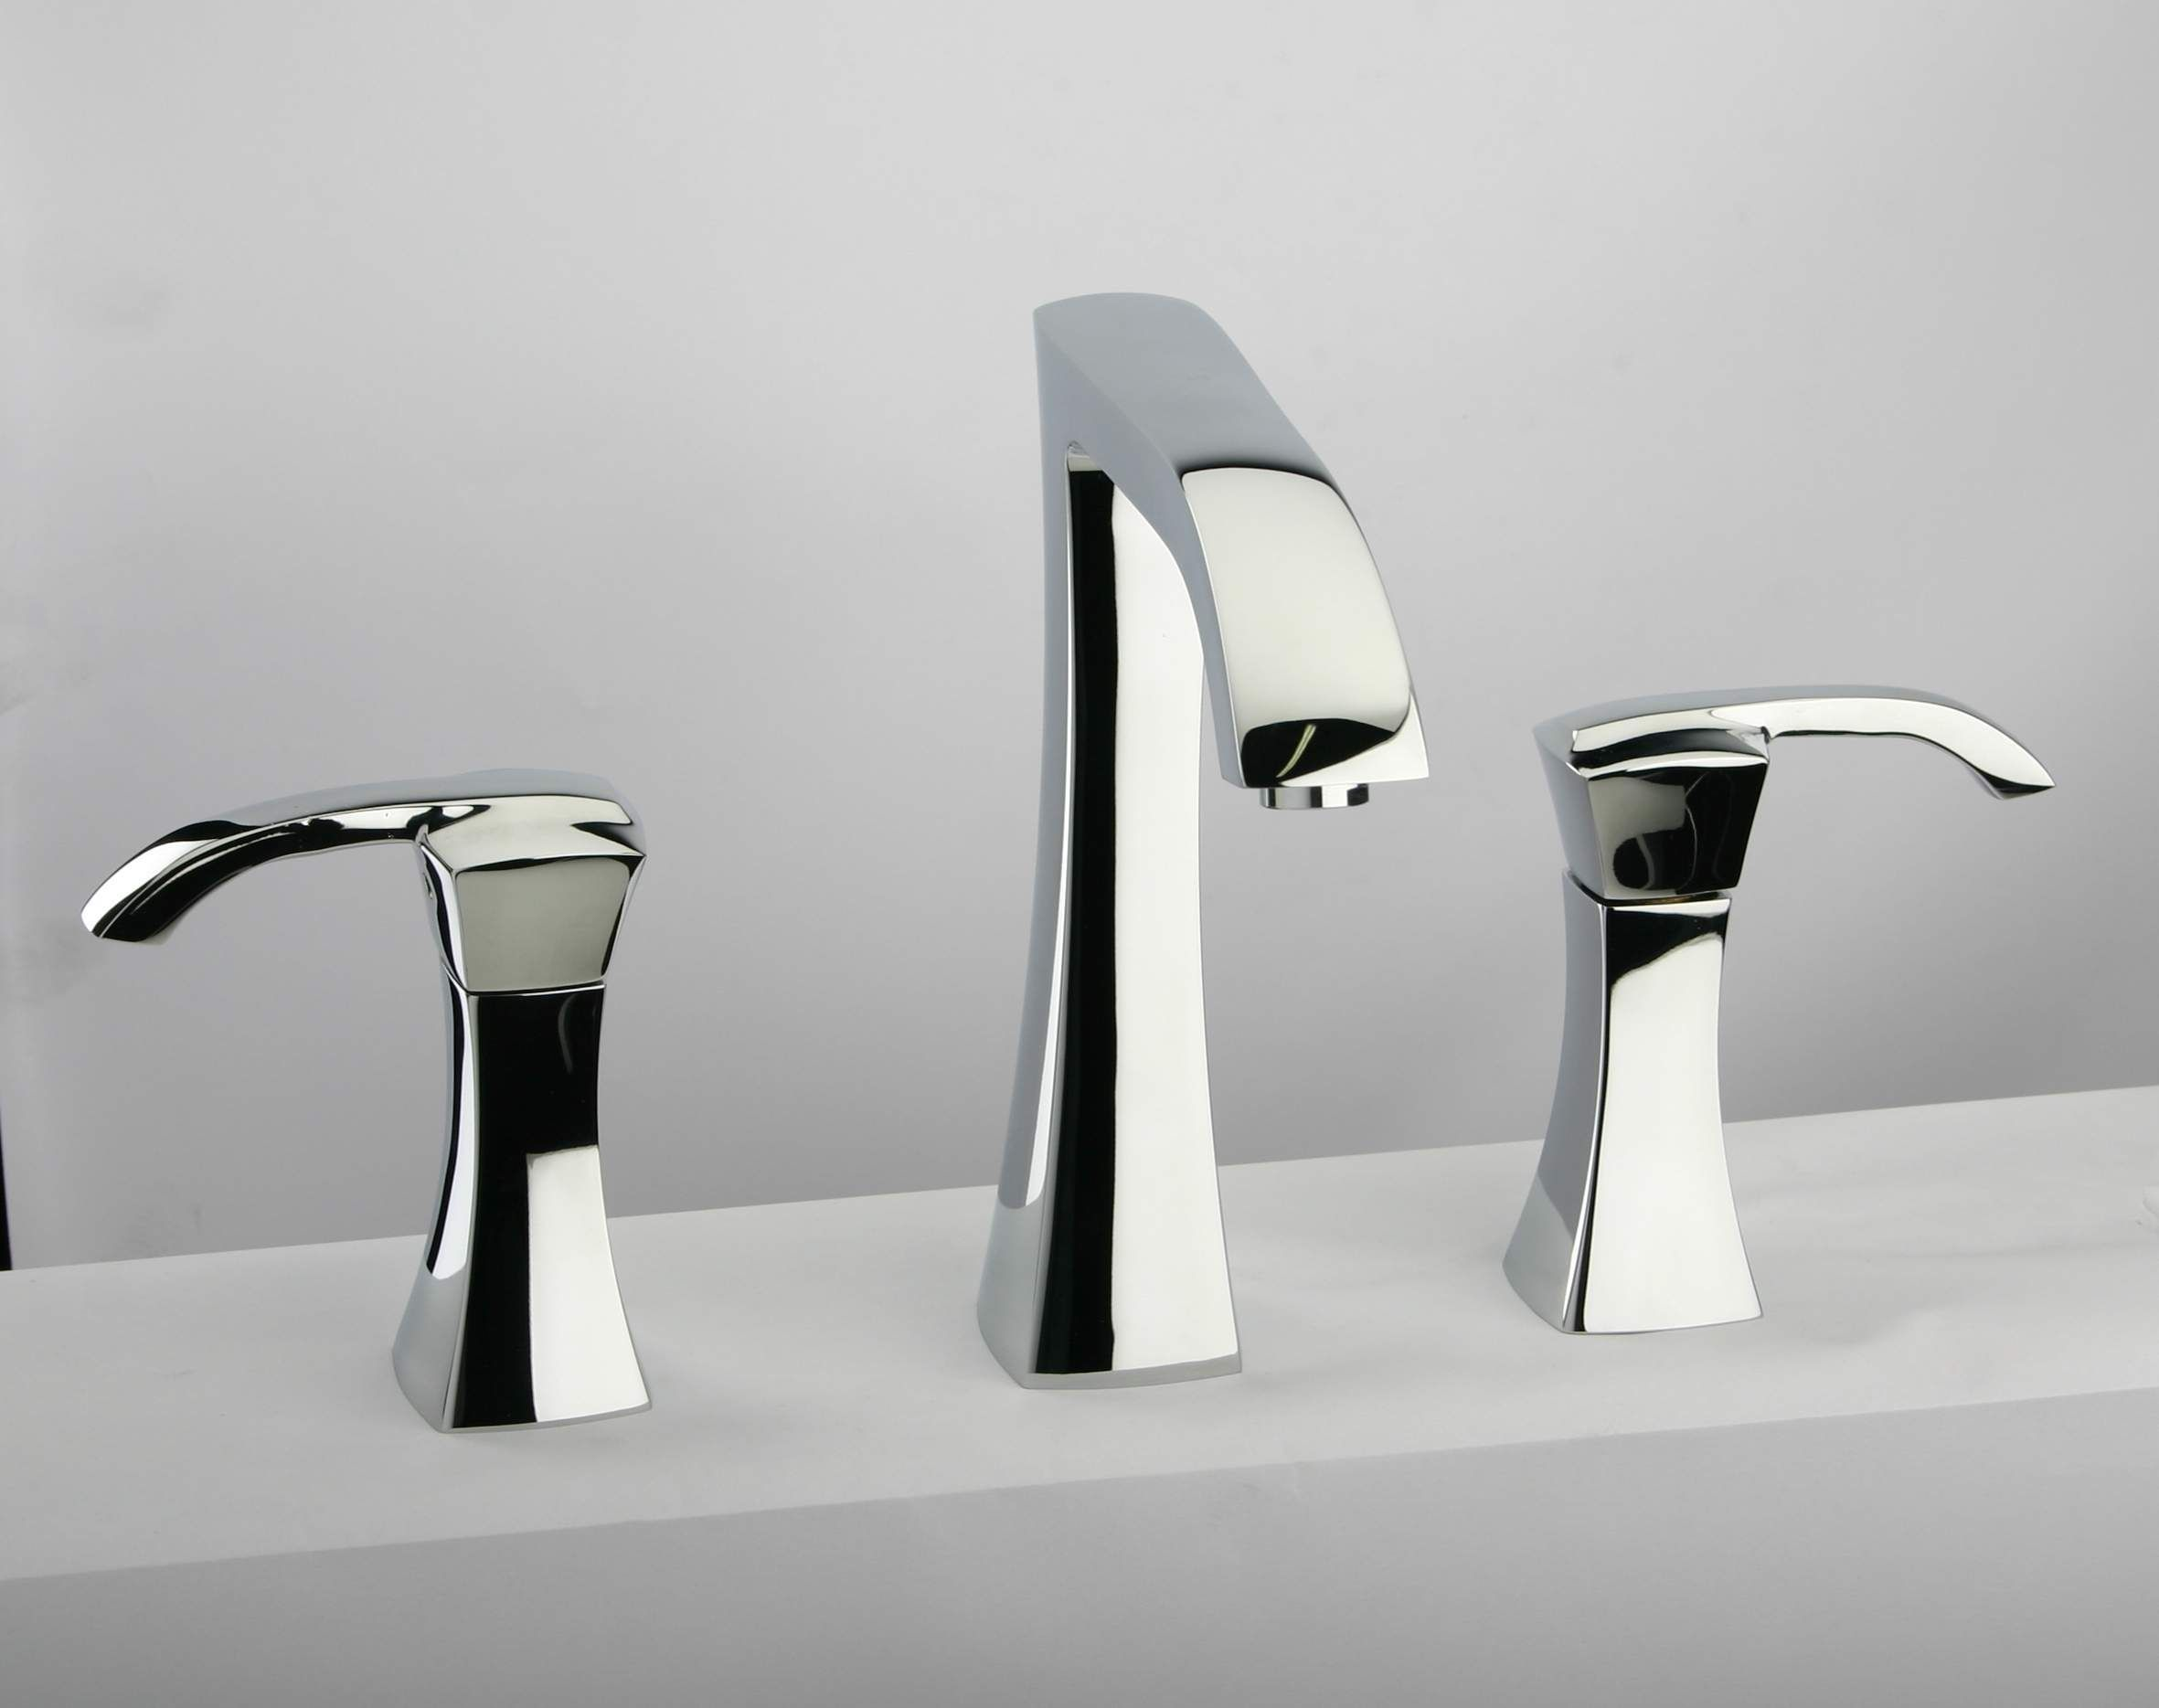 Grohe Faucets Bathroom Miami Price Pfister Also Design S Labor Day Bathroomfaucetsmiami